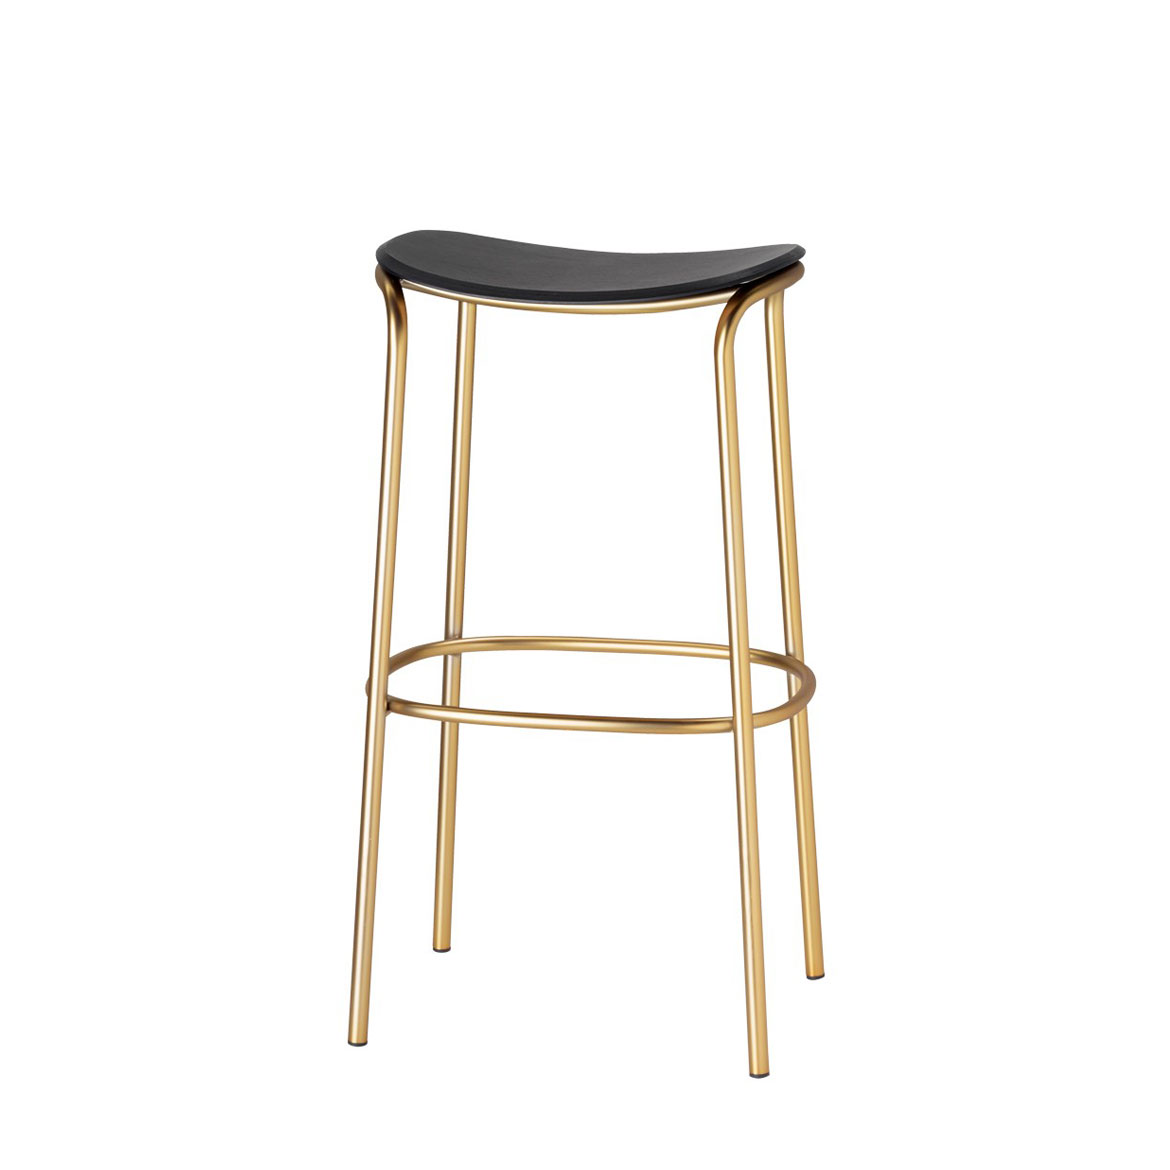 Barstool with powder coated metal frame. Avaliable with wooden, upholstered or metal seat. Comes in two hights: 77 or 67 cm